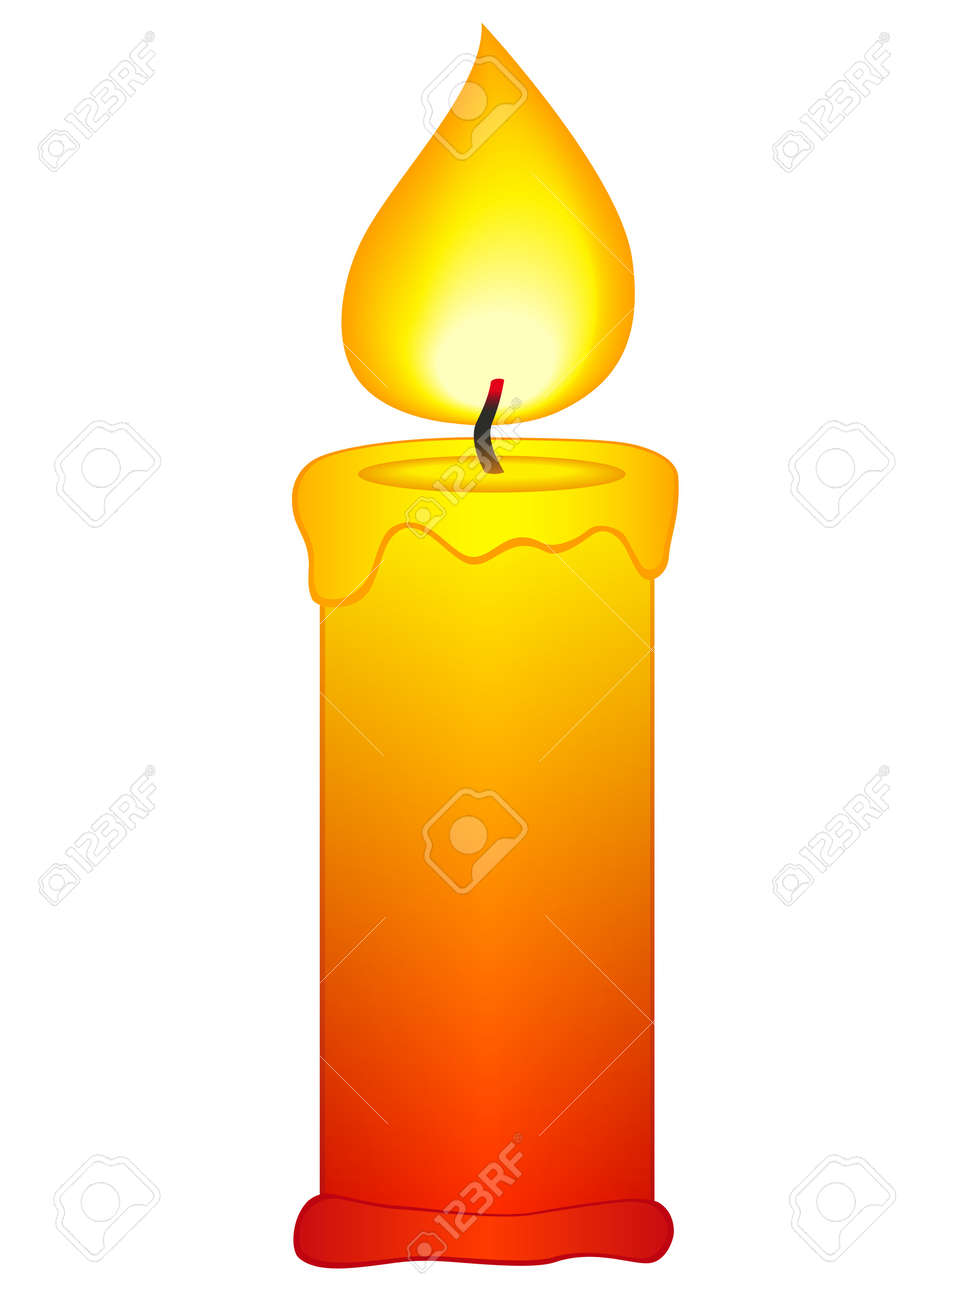 Candle Icon On A White Background Royalty Free Cliparts, Vectors ... for Fire Lamp Clipart  26bof